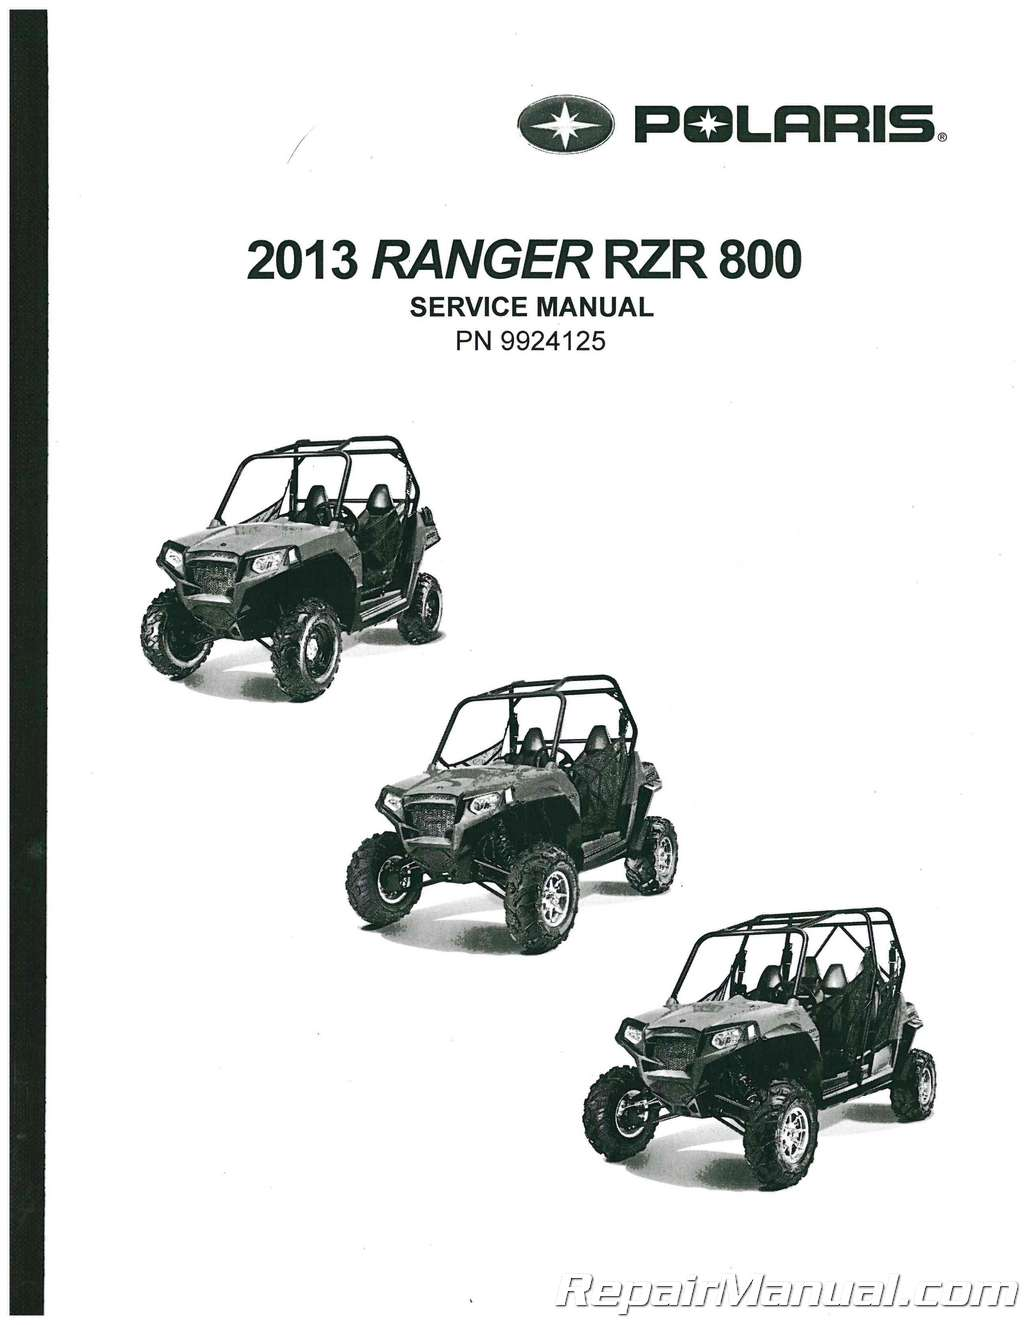 2013 Polaris Ranger RZR 800 Service Manual